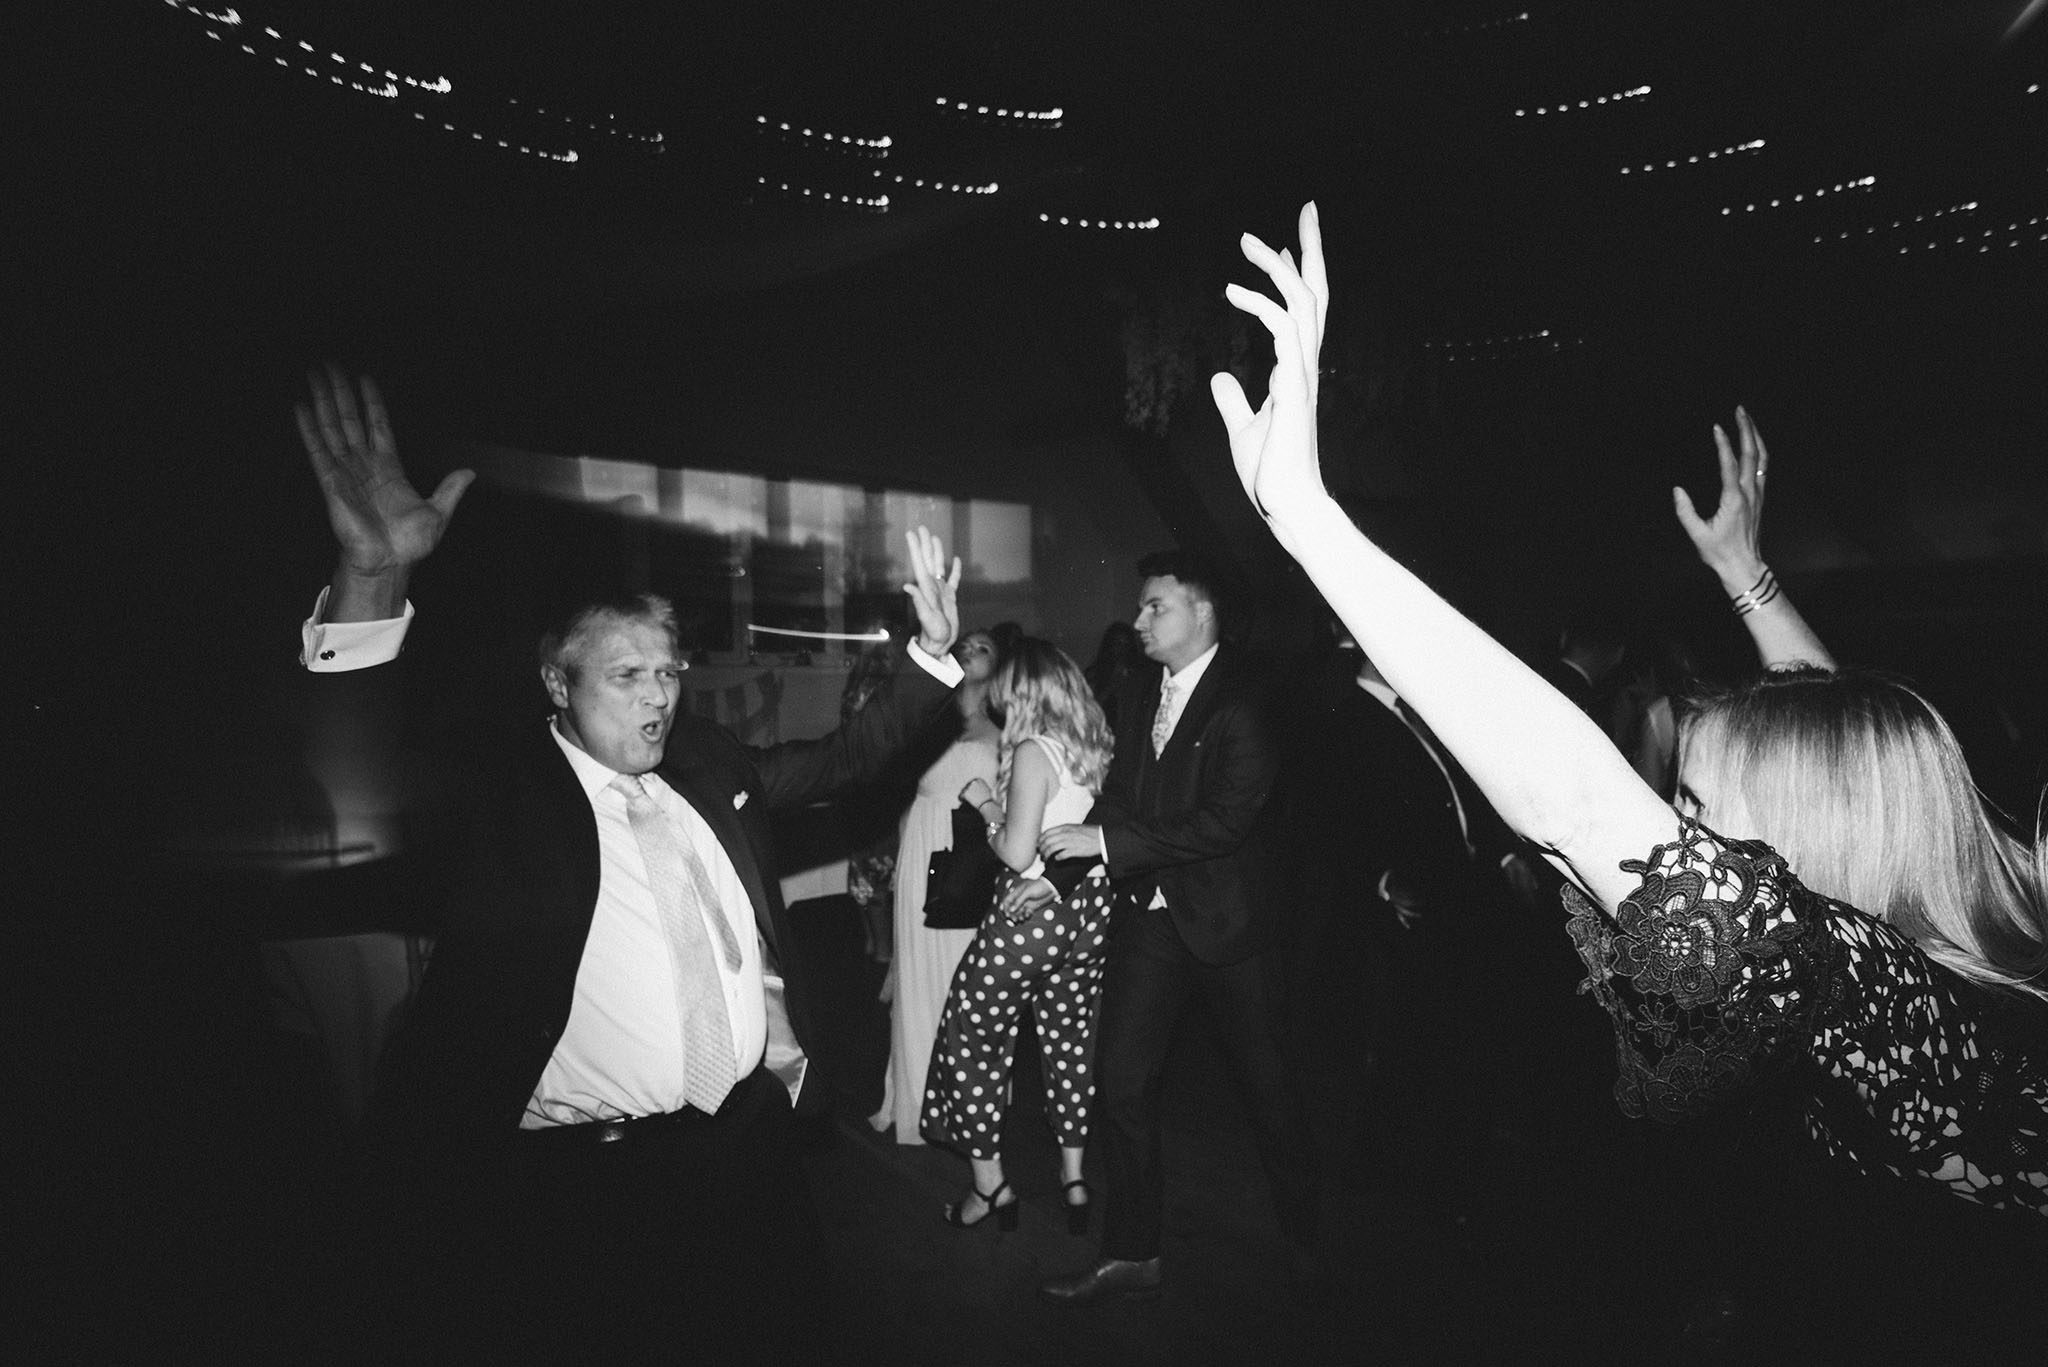 scott-stockwell-photography-guest-dance.jpg